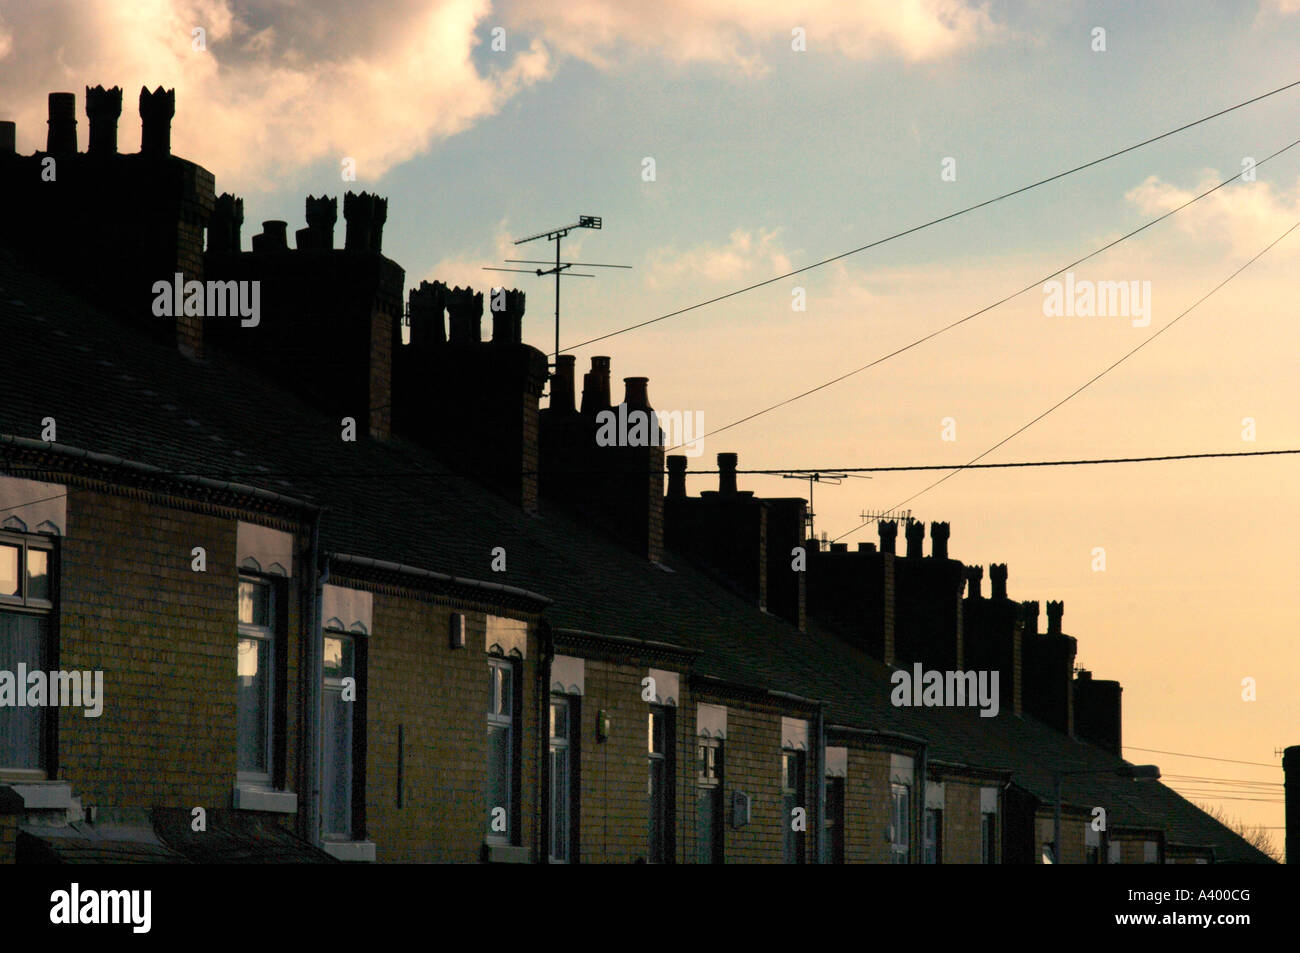 A Row Of Terraced Houses In Stoke-On-Trent, Staffordshire ,UK. - Stock Image